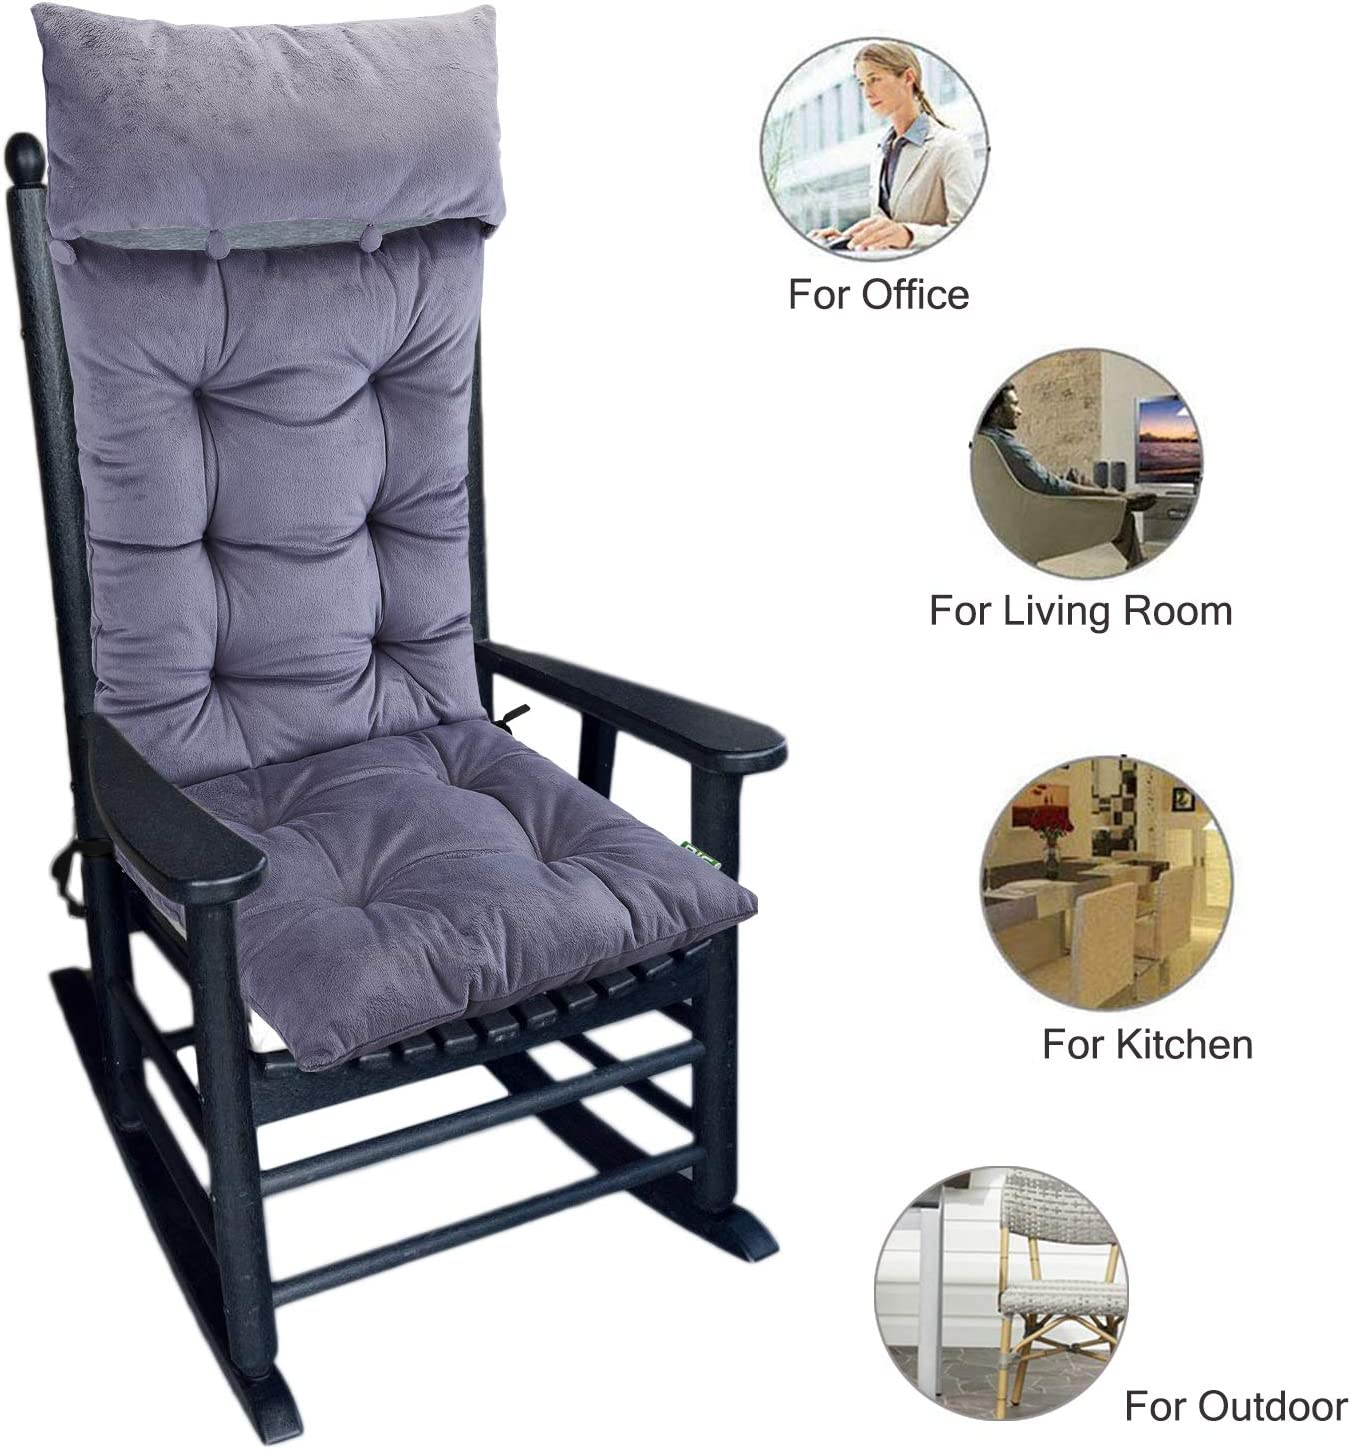 Upholstery for Rocking Chair Upholstered Seat Cushion High-Back Cushion Long Armchair Headrest Replacement Cushion with Straps Lounger Chair Garden Lounge Mat,48 125cm